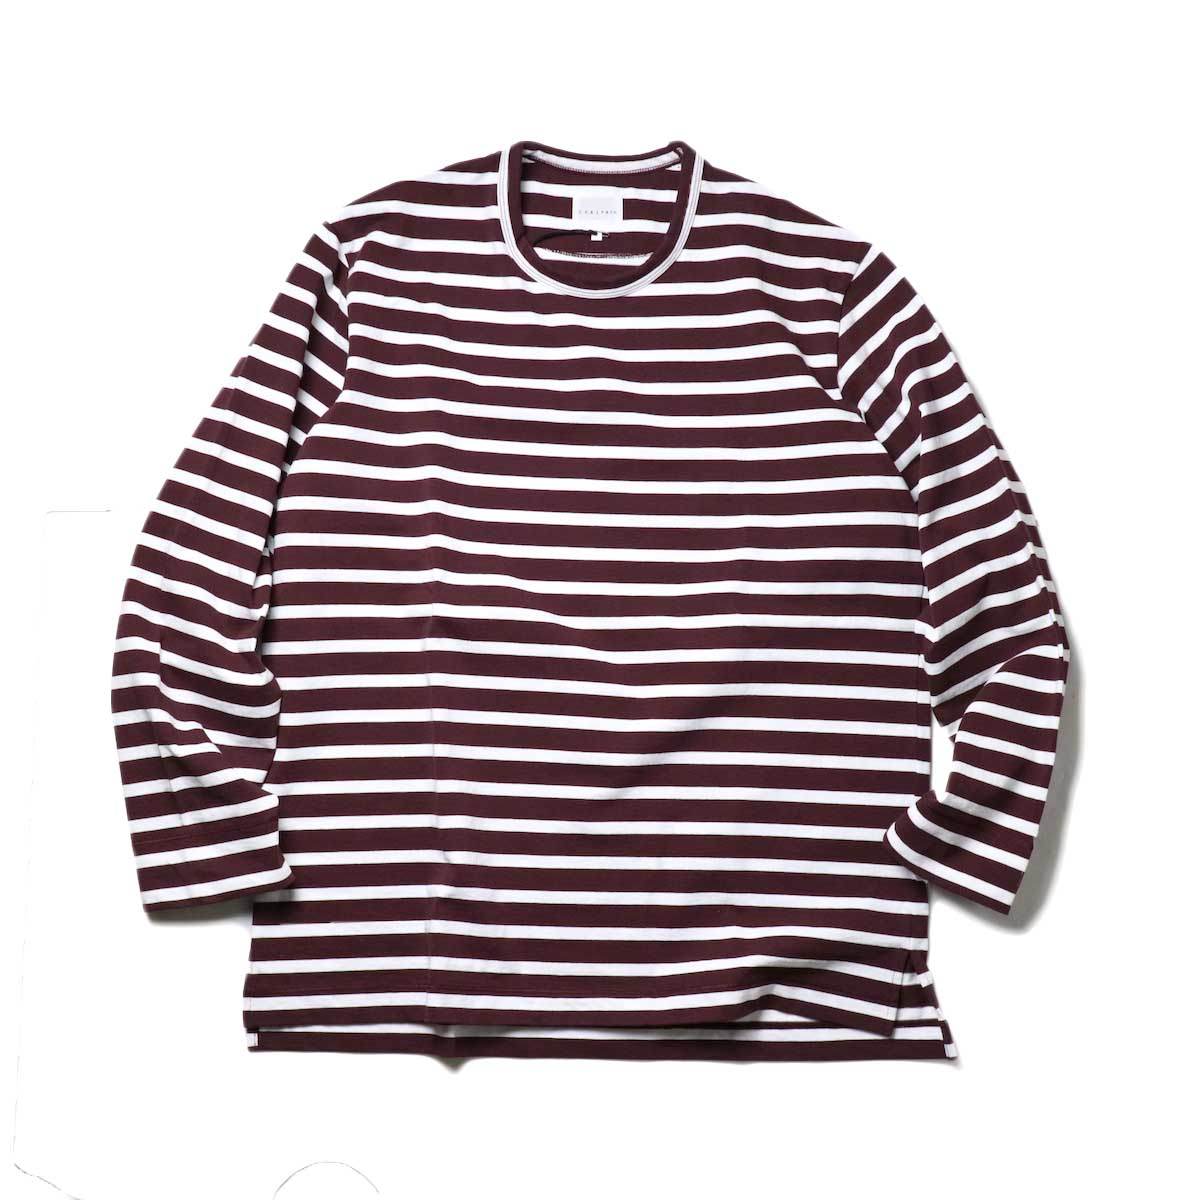 CURLY / SALFORD L/S BORDER TEE (Burgundy / White)